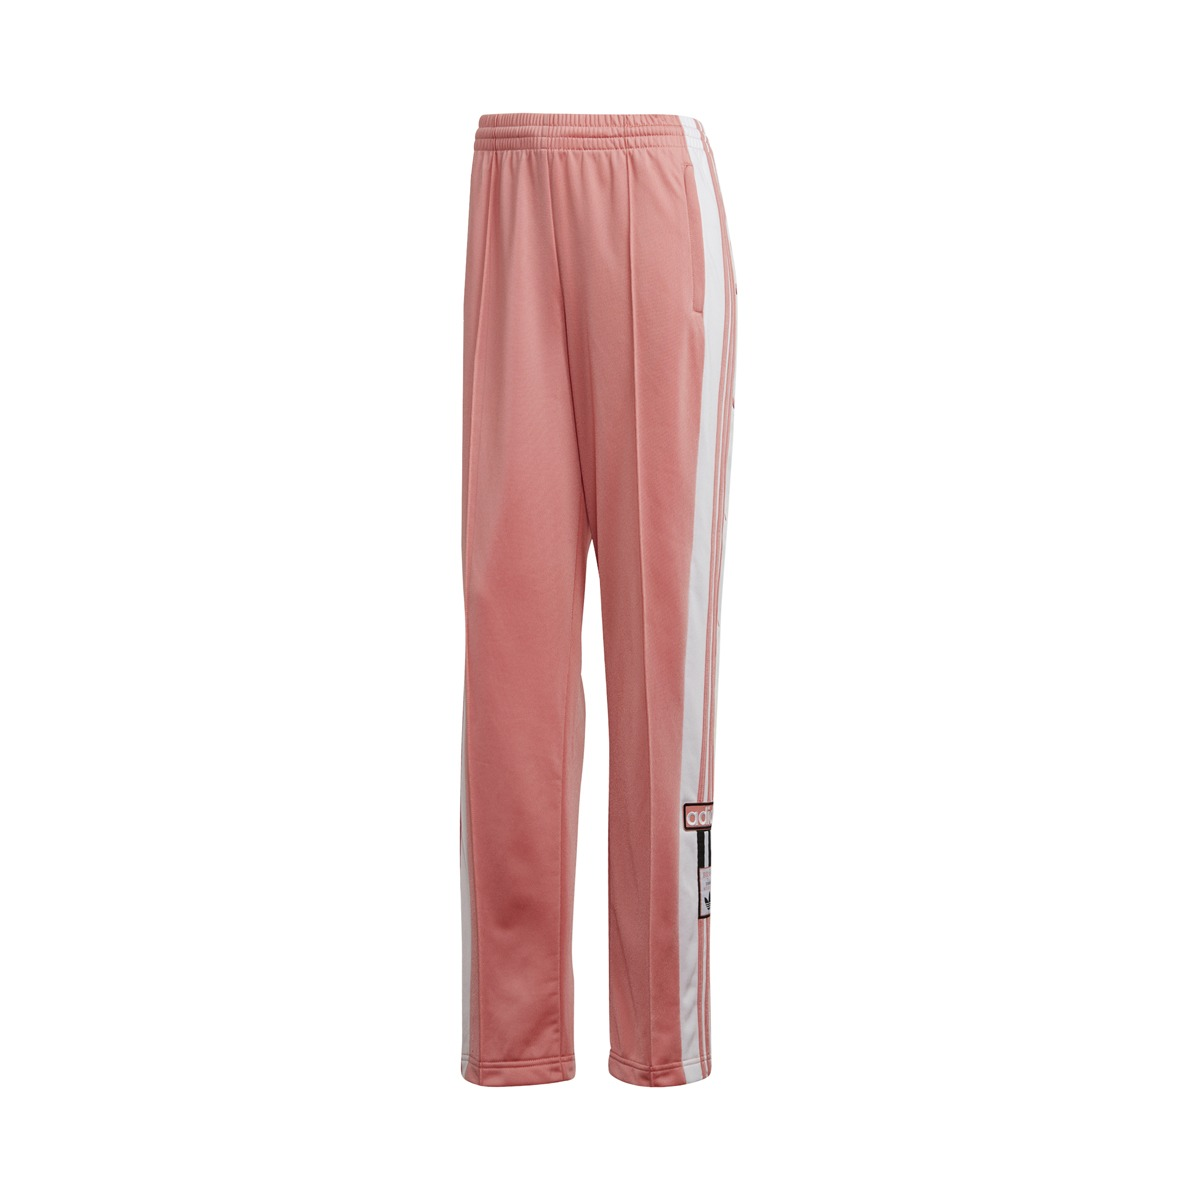 6bed25e5f68 pantalon adidas originals moda adibreak pant mujer rv bl. Cargando zoom.